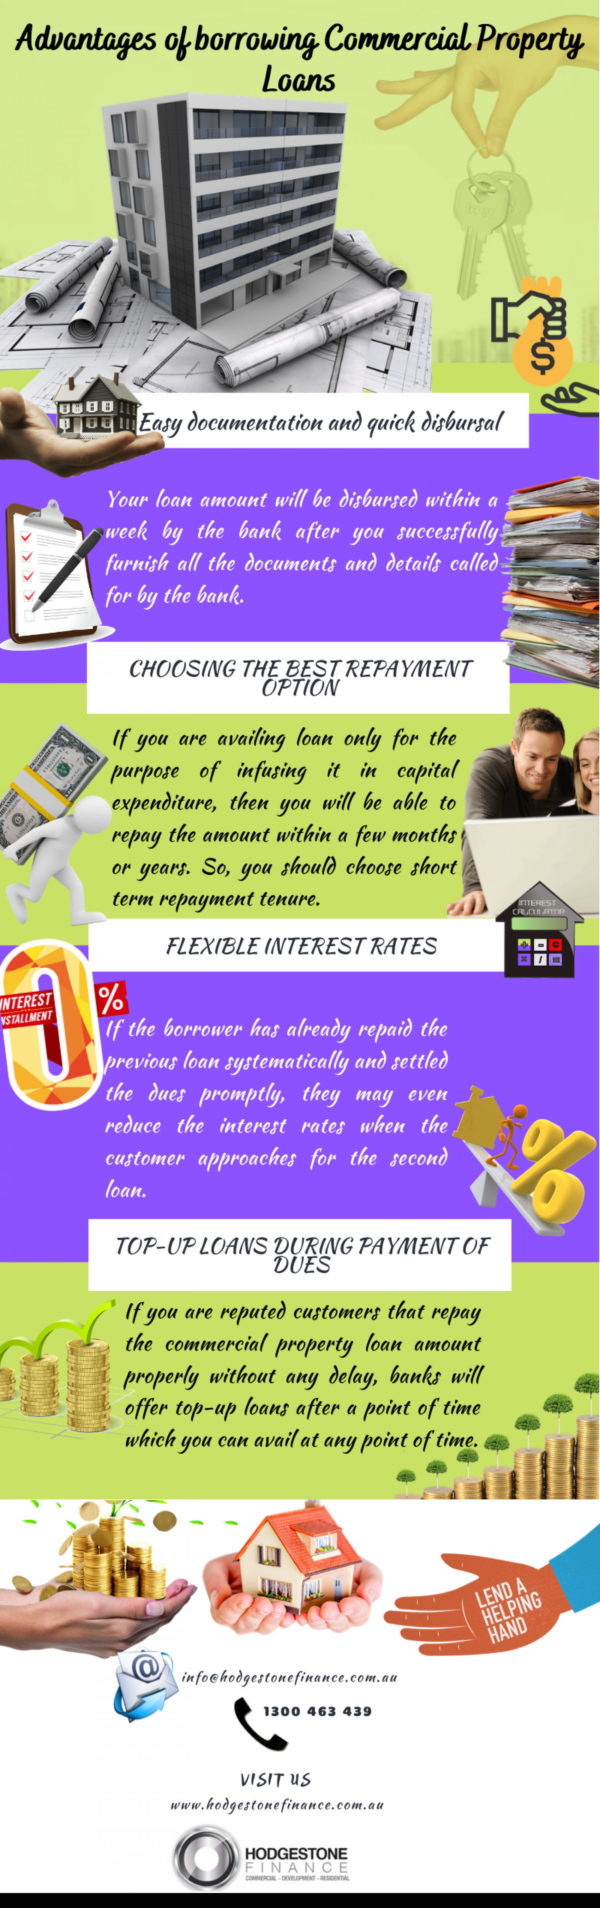 advantages-of-borrowing-commercial-property-loans